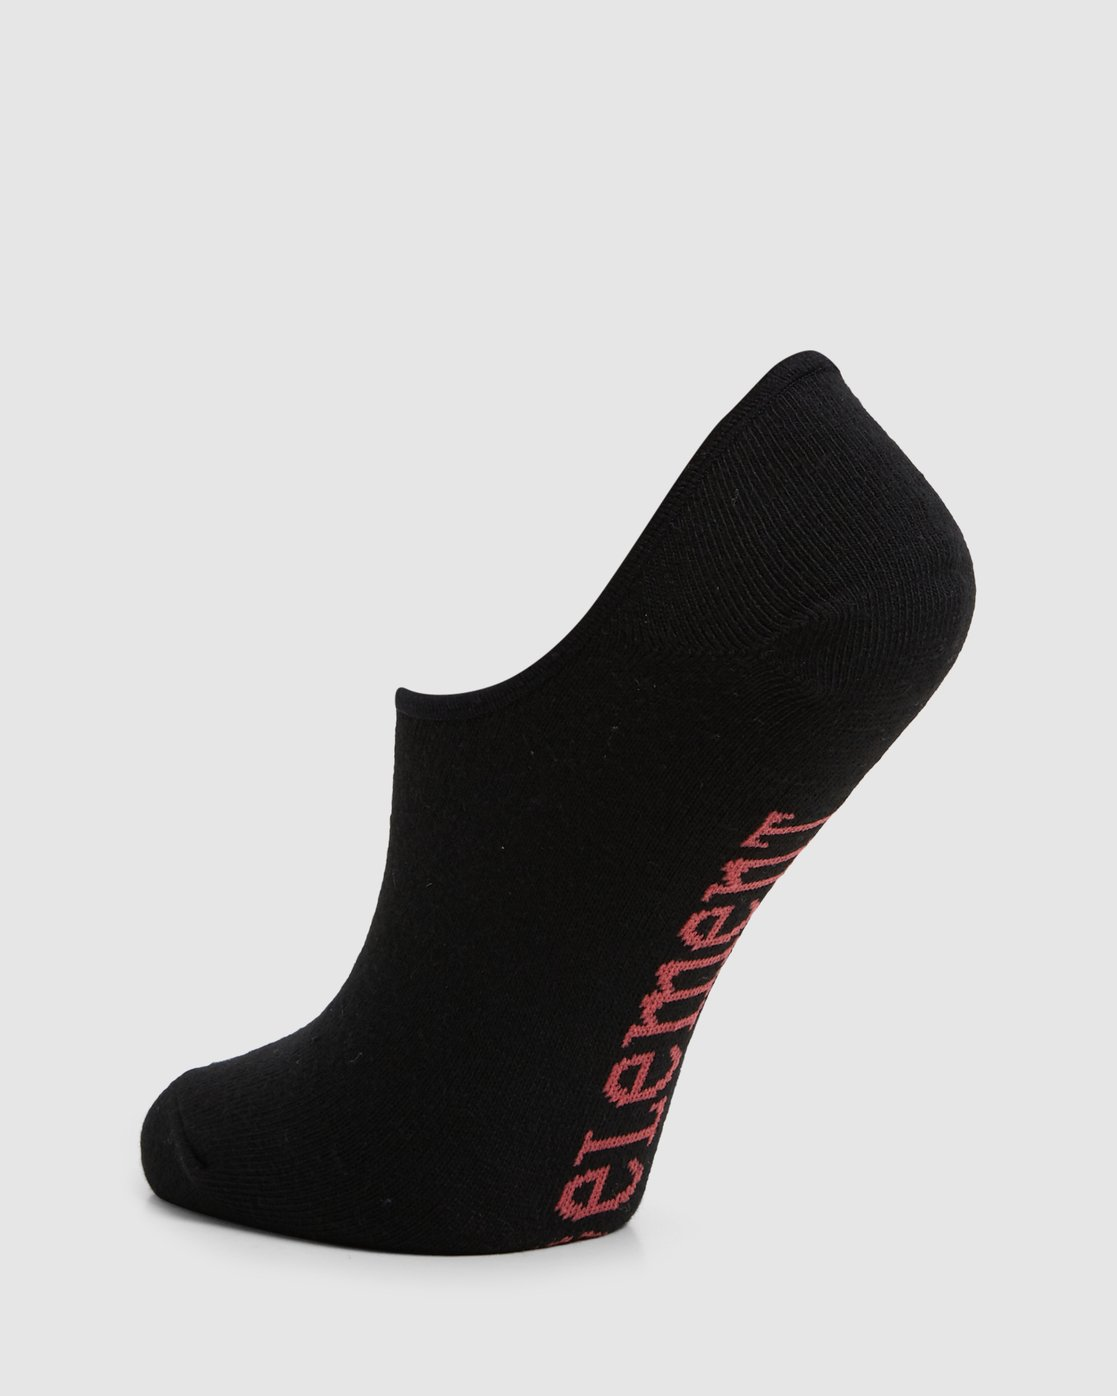 2 ELEMENT NUDIE SOCK 5 PACK Black 284653 Element